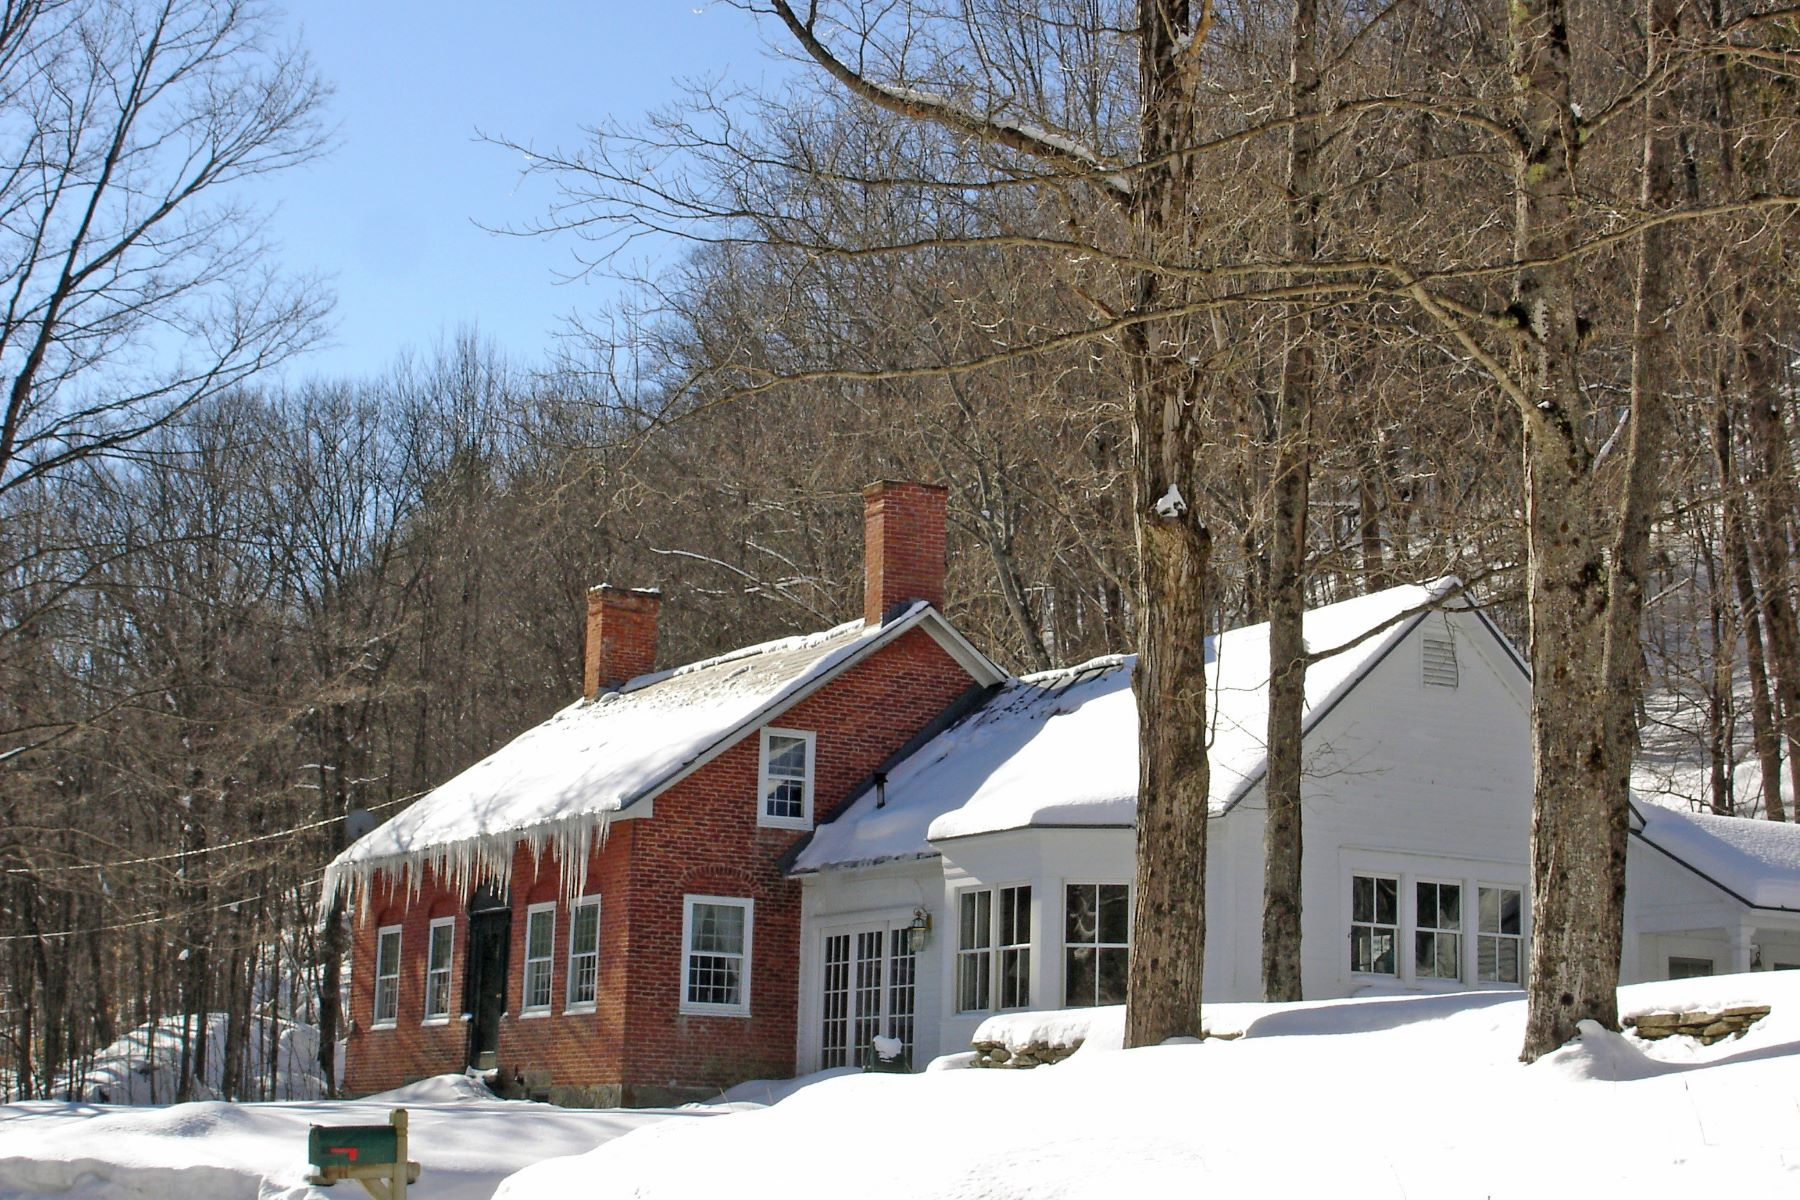 Single Family Home for Sale at Antique Brick Federal on 100+ Acres 2092 Cavendish Gulf Rd Cavendish, Vermont 05142 United States